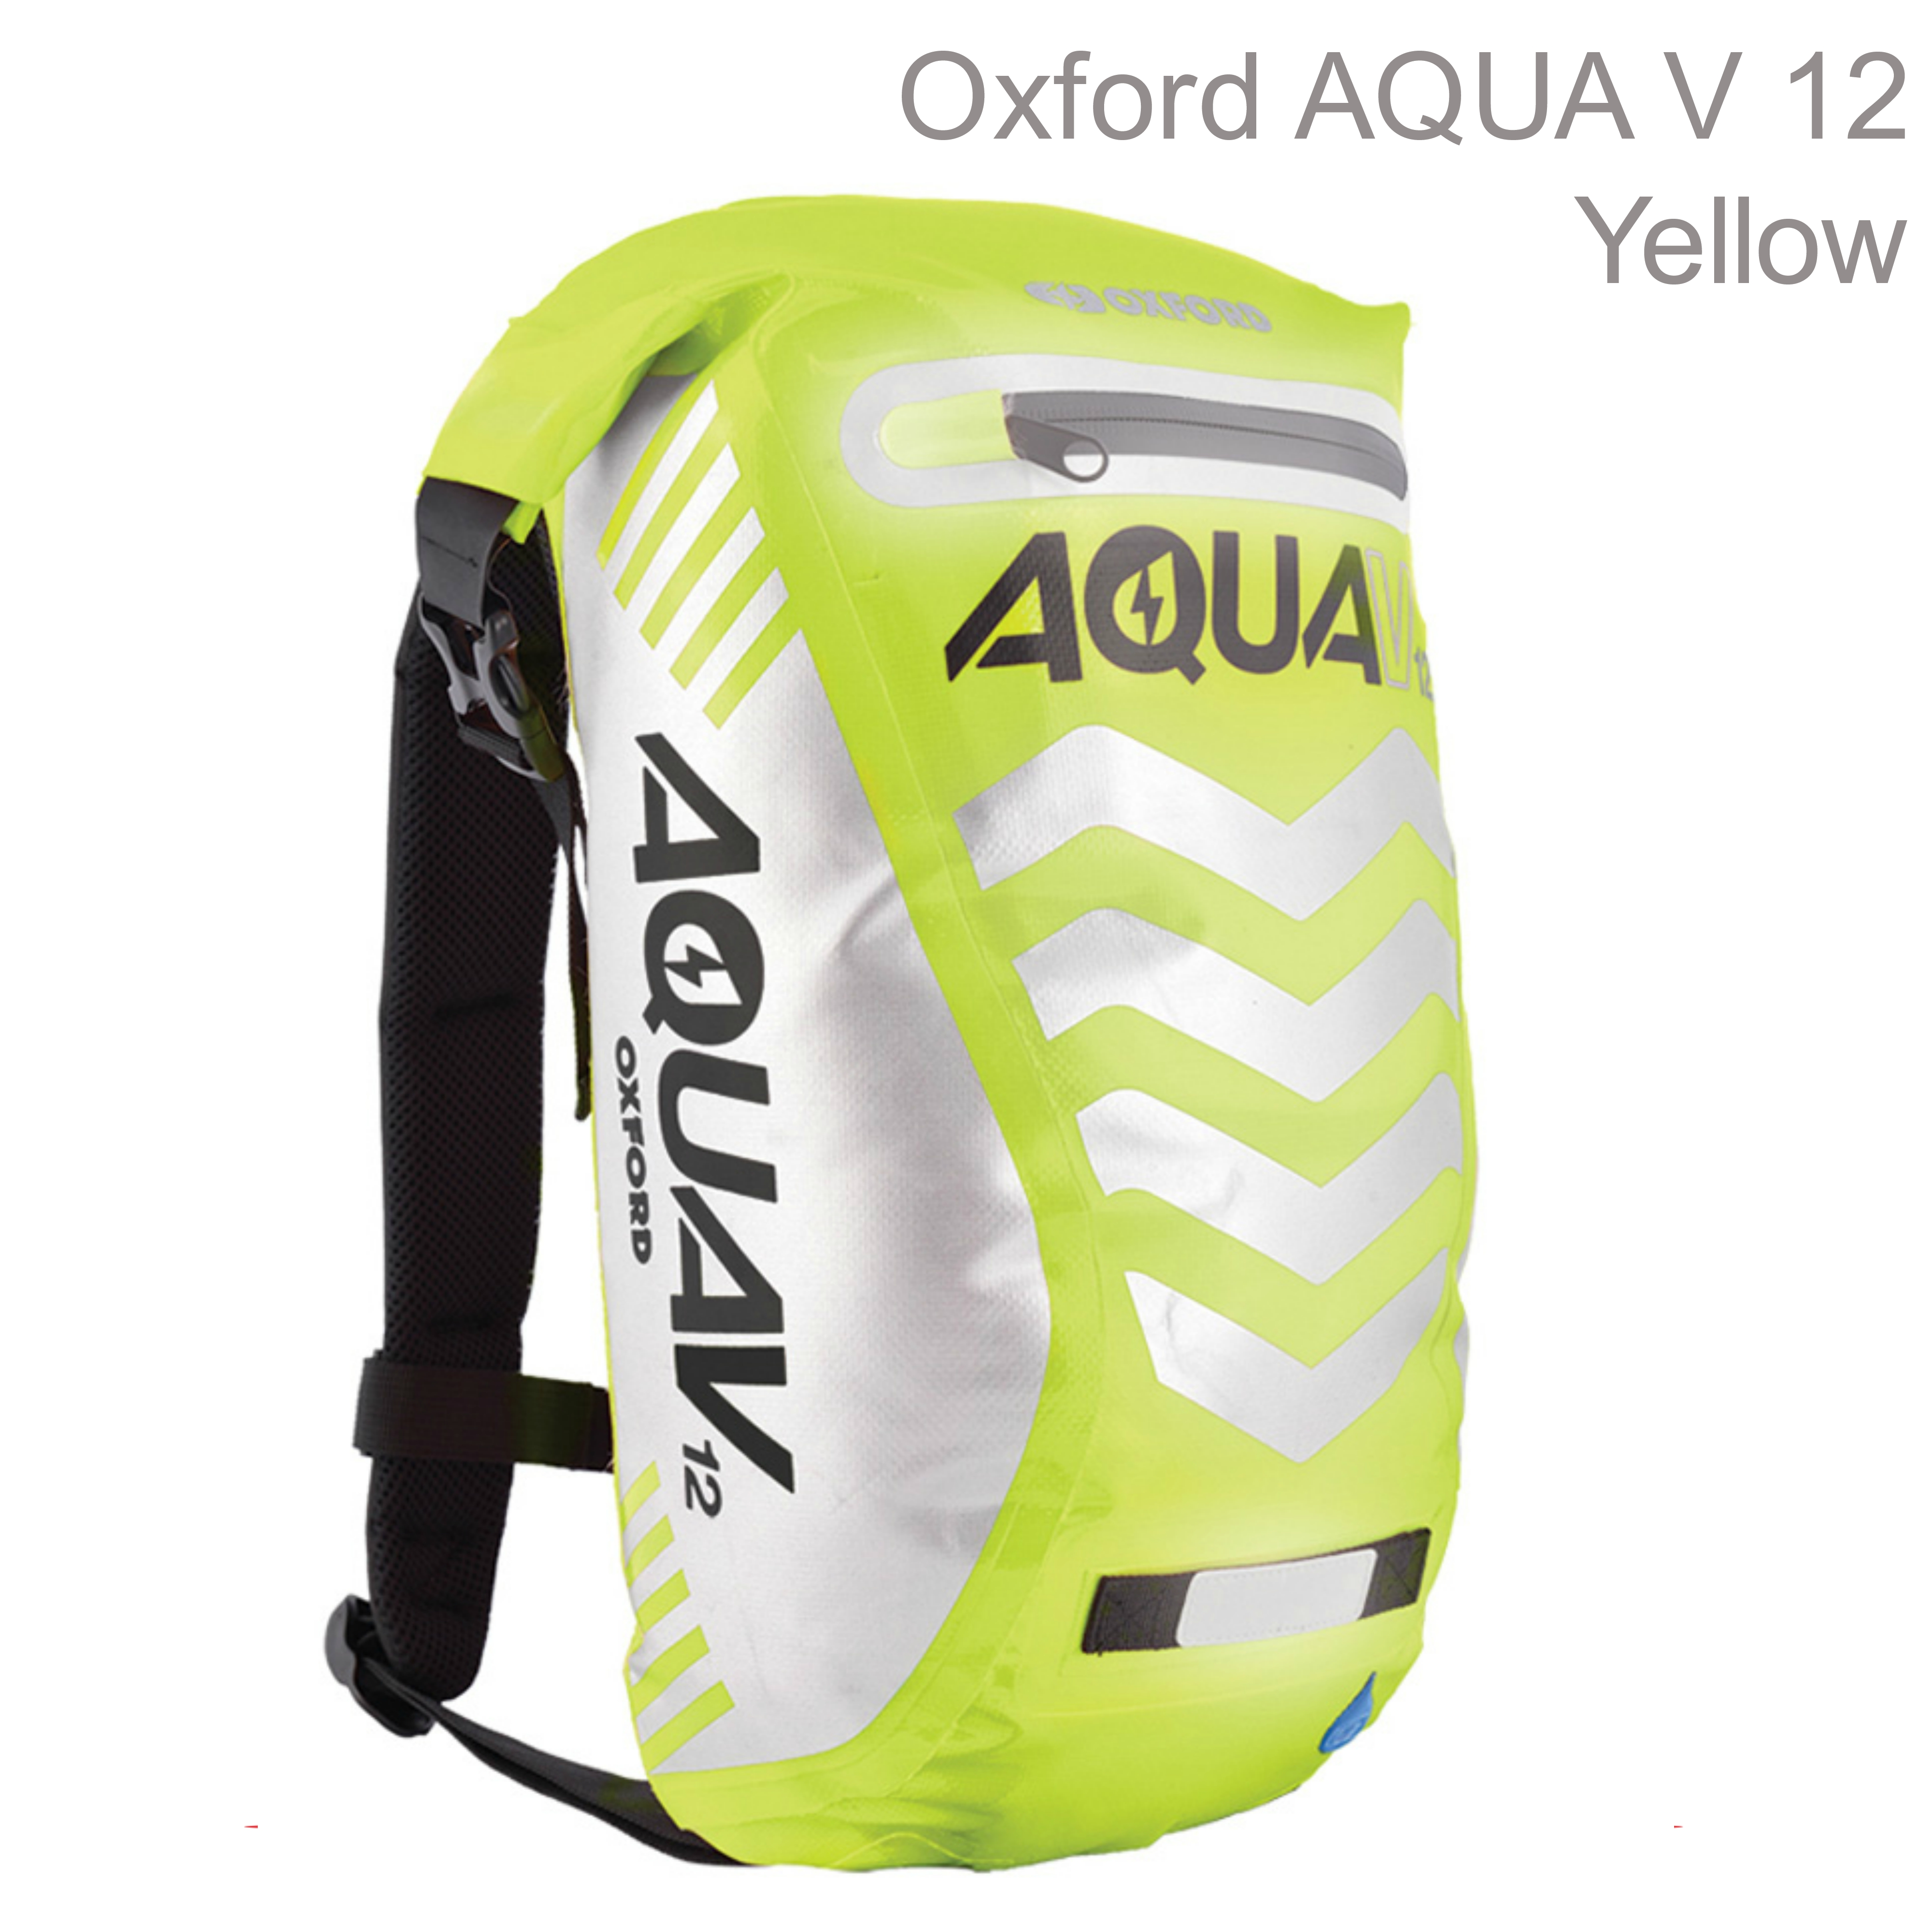 Oxford OL953 Aqua V12 Rucksack Motorbike/Cycle Backpack|Waterproof|12 Litre|Yellow